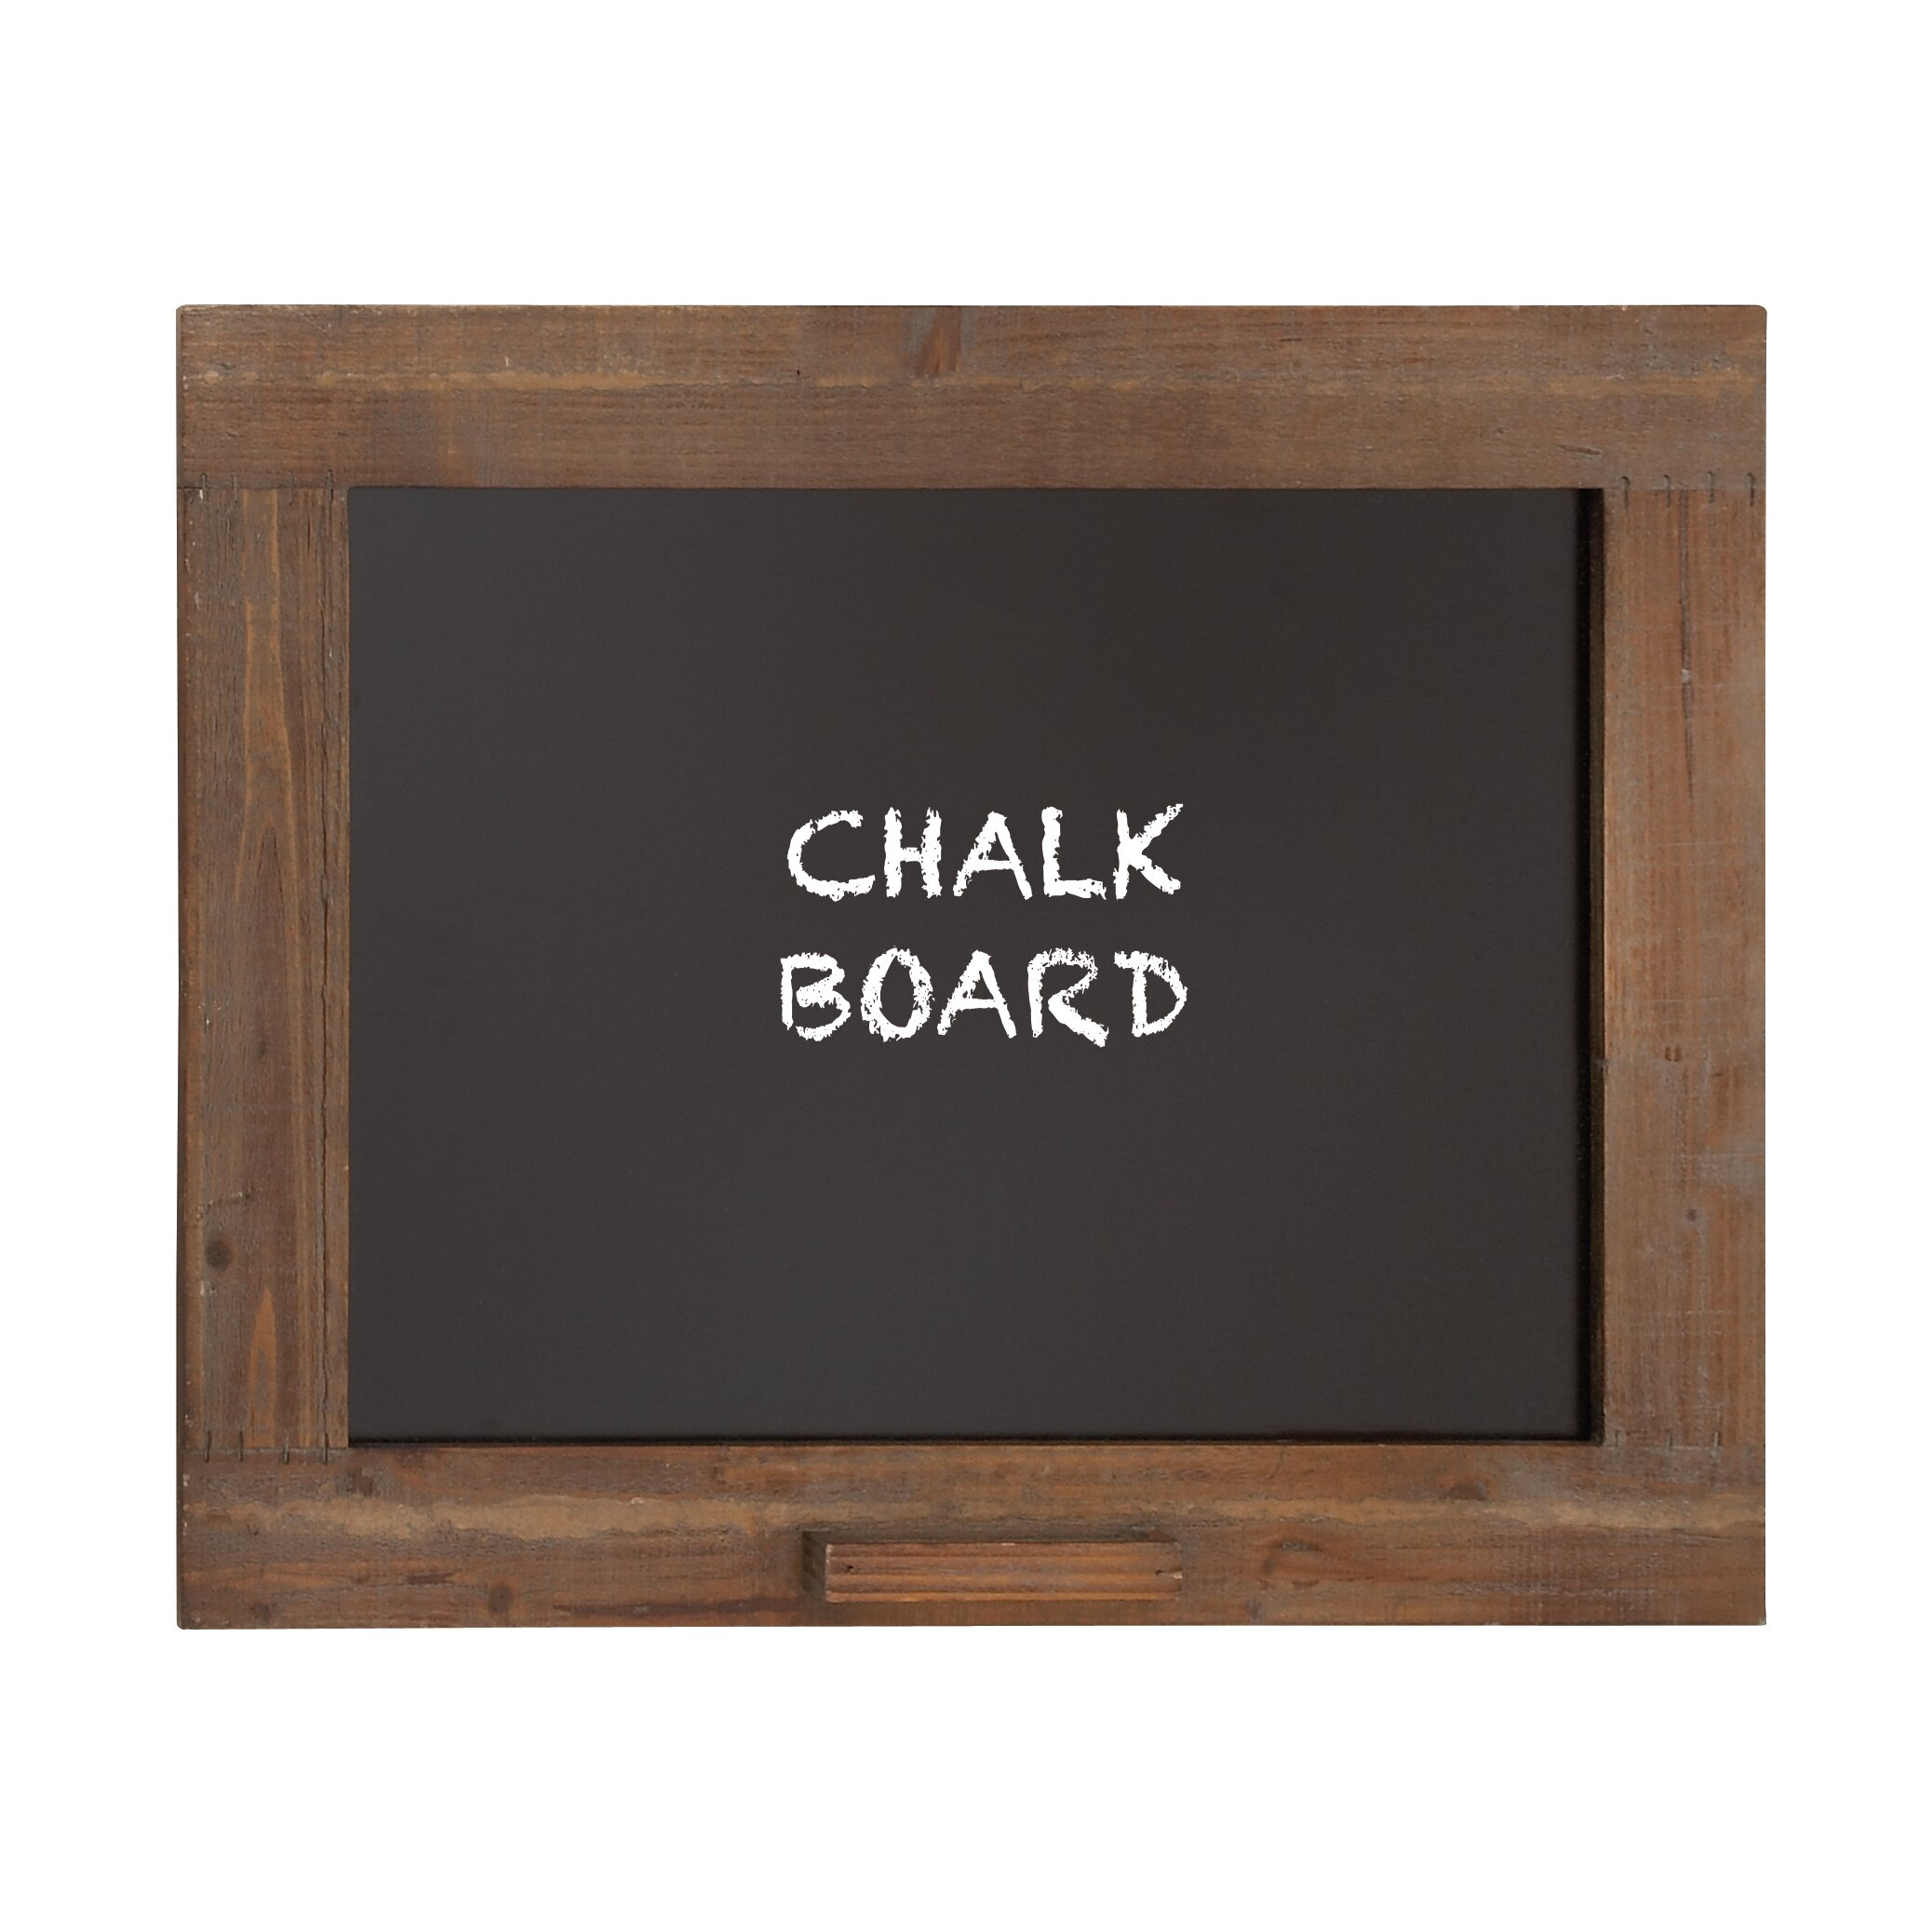 wooden frame with chalkboard